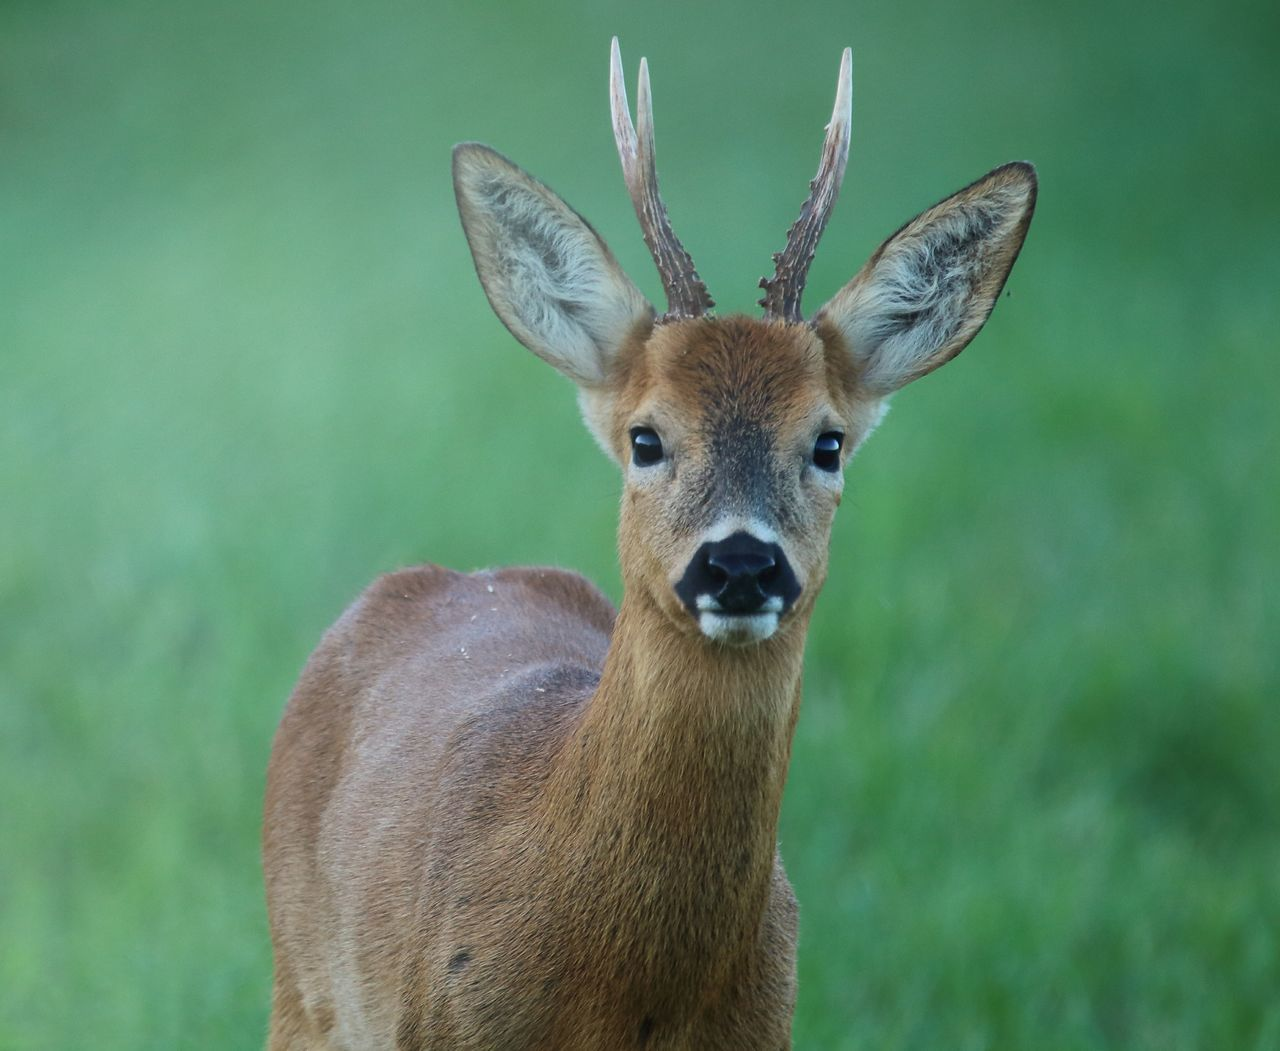 Animal Themes Animal Wildlife Close-up Deer Looking At Camera Mammal Nature One Animal Outdoors Roe Deer Stag Wildlife Wildlife Photography Young Animal